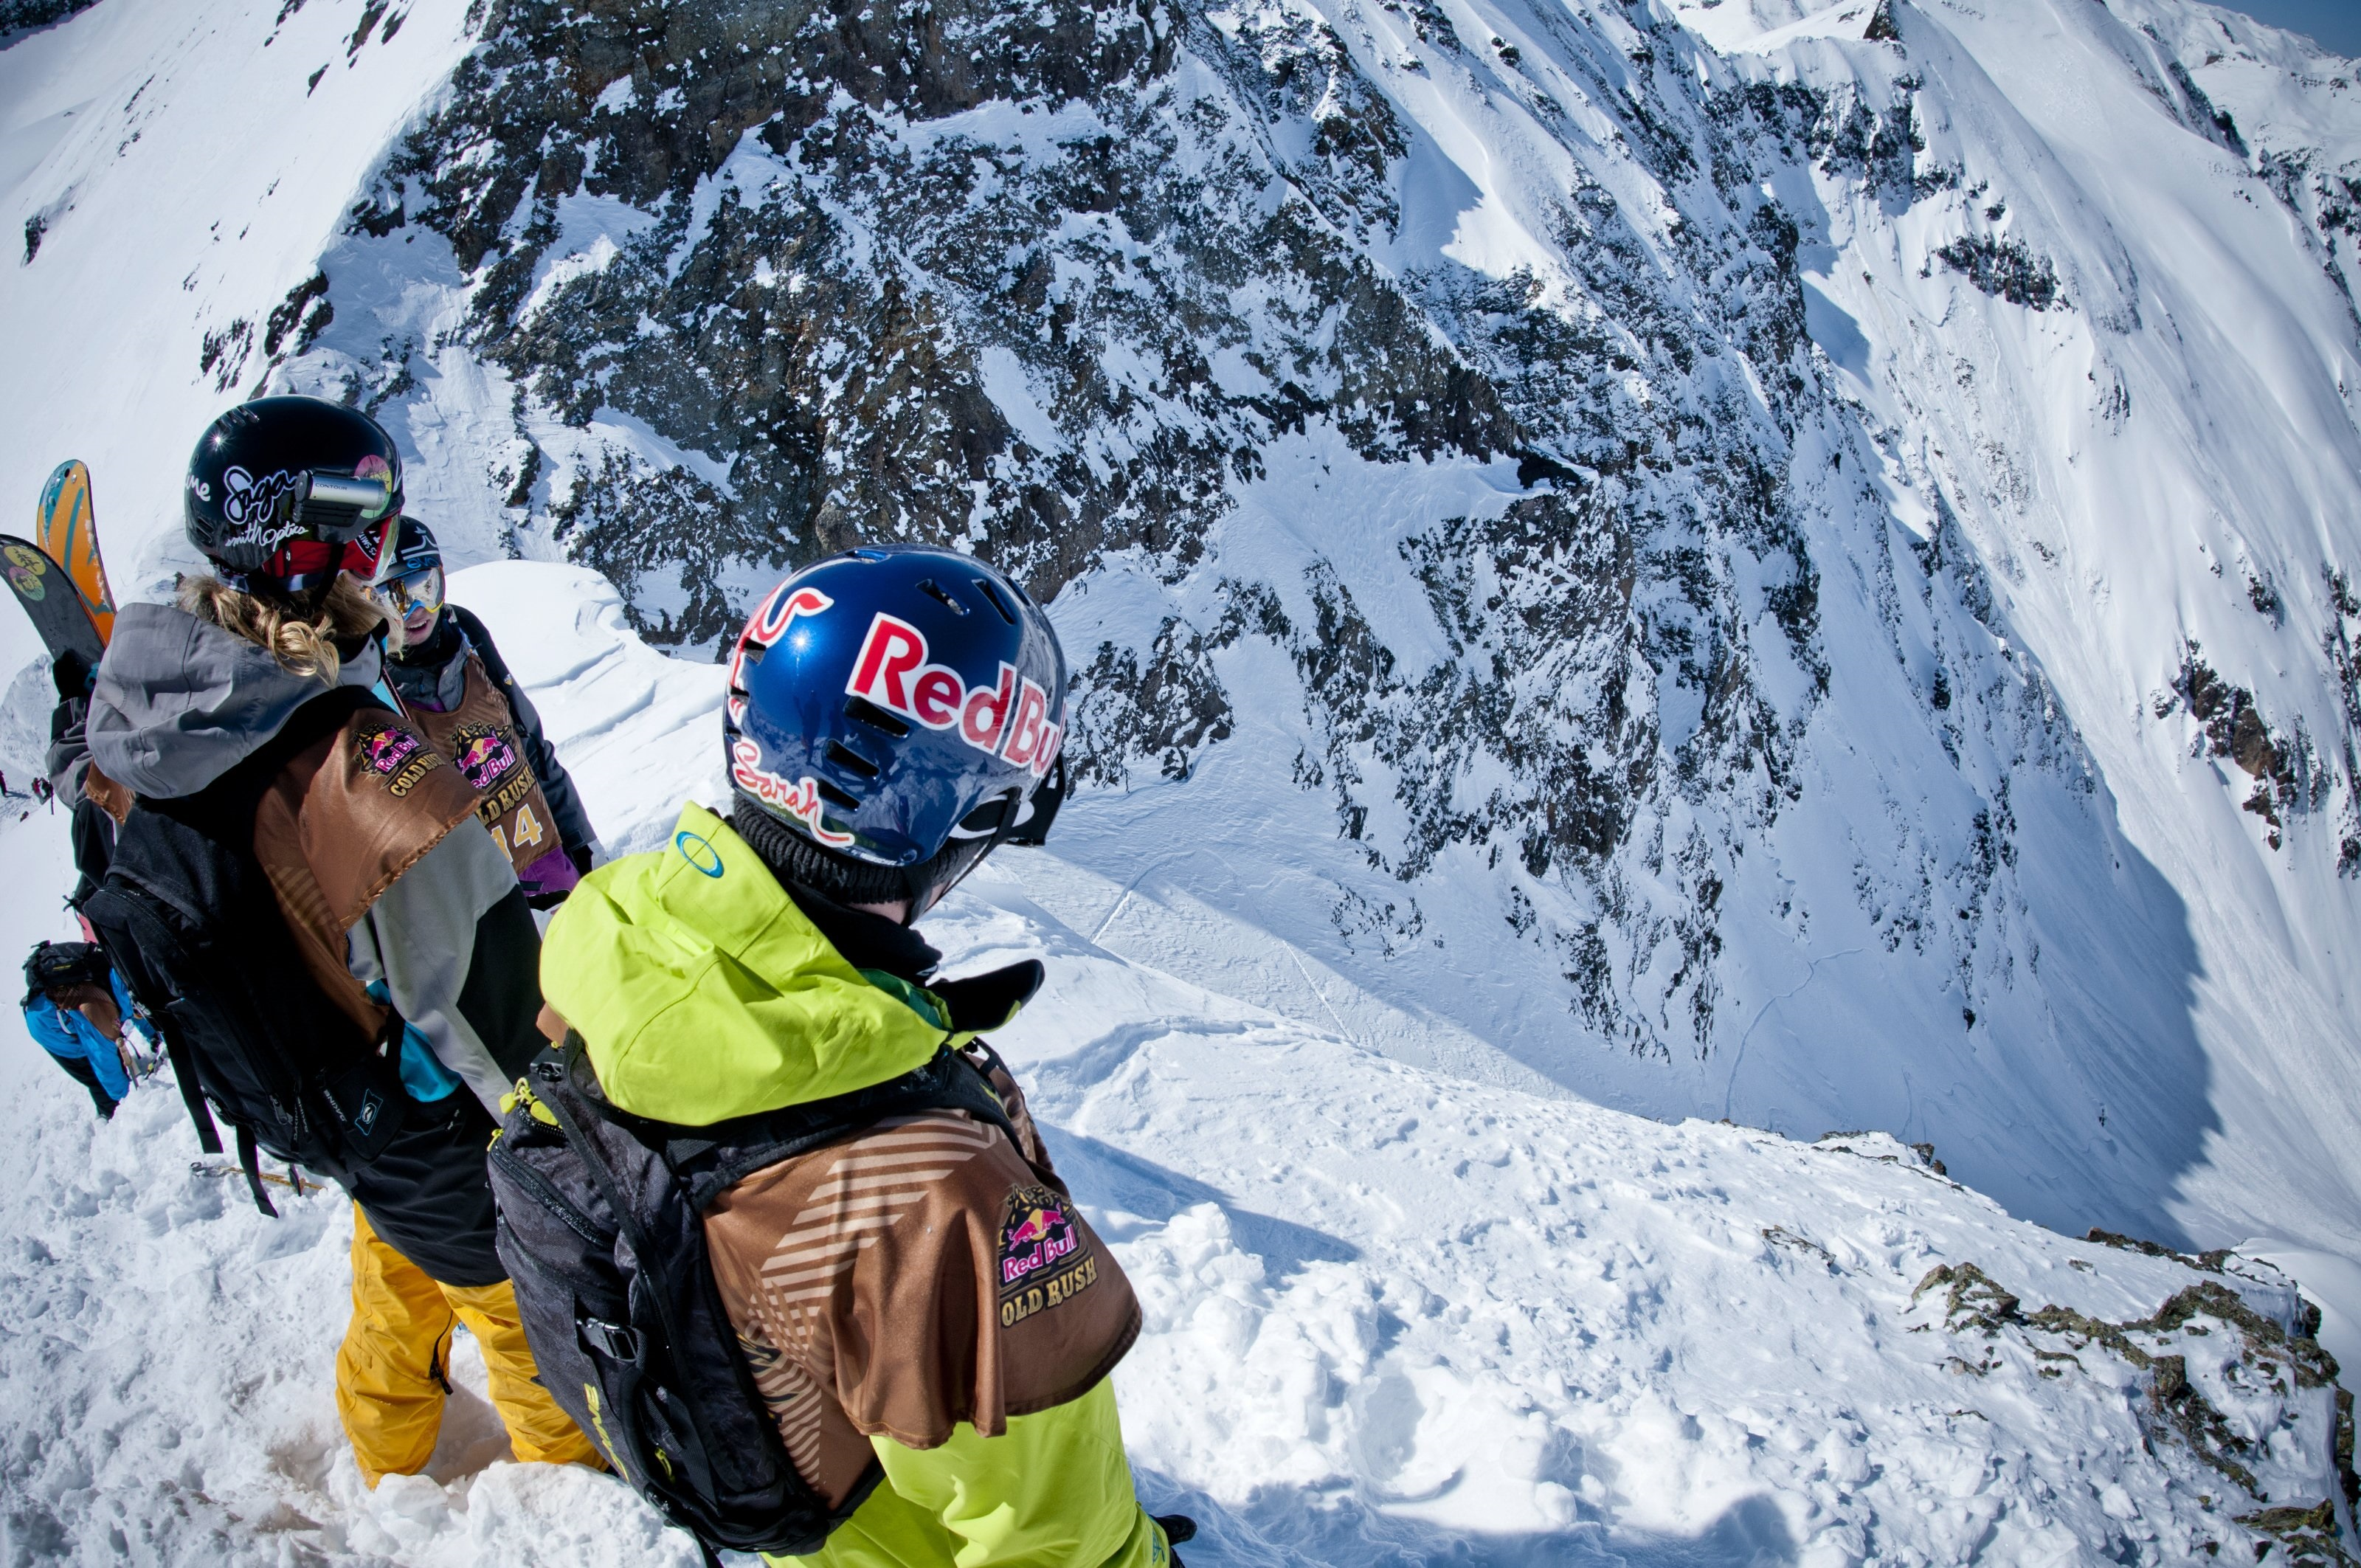 red bull cold rush postponed until march 2326 due to